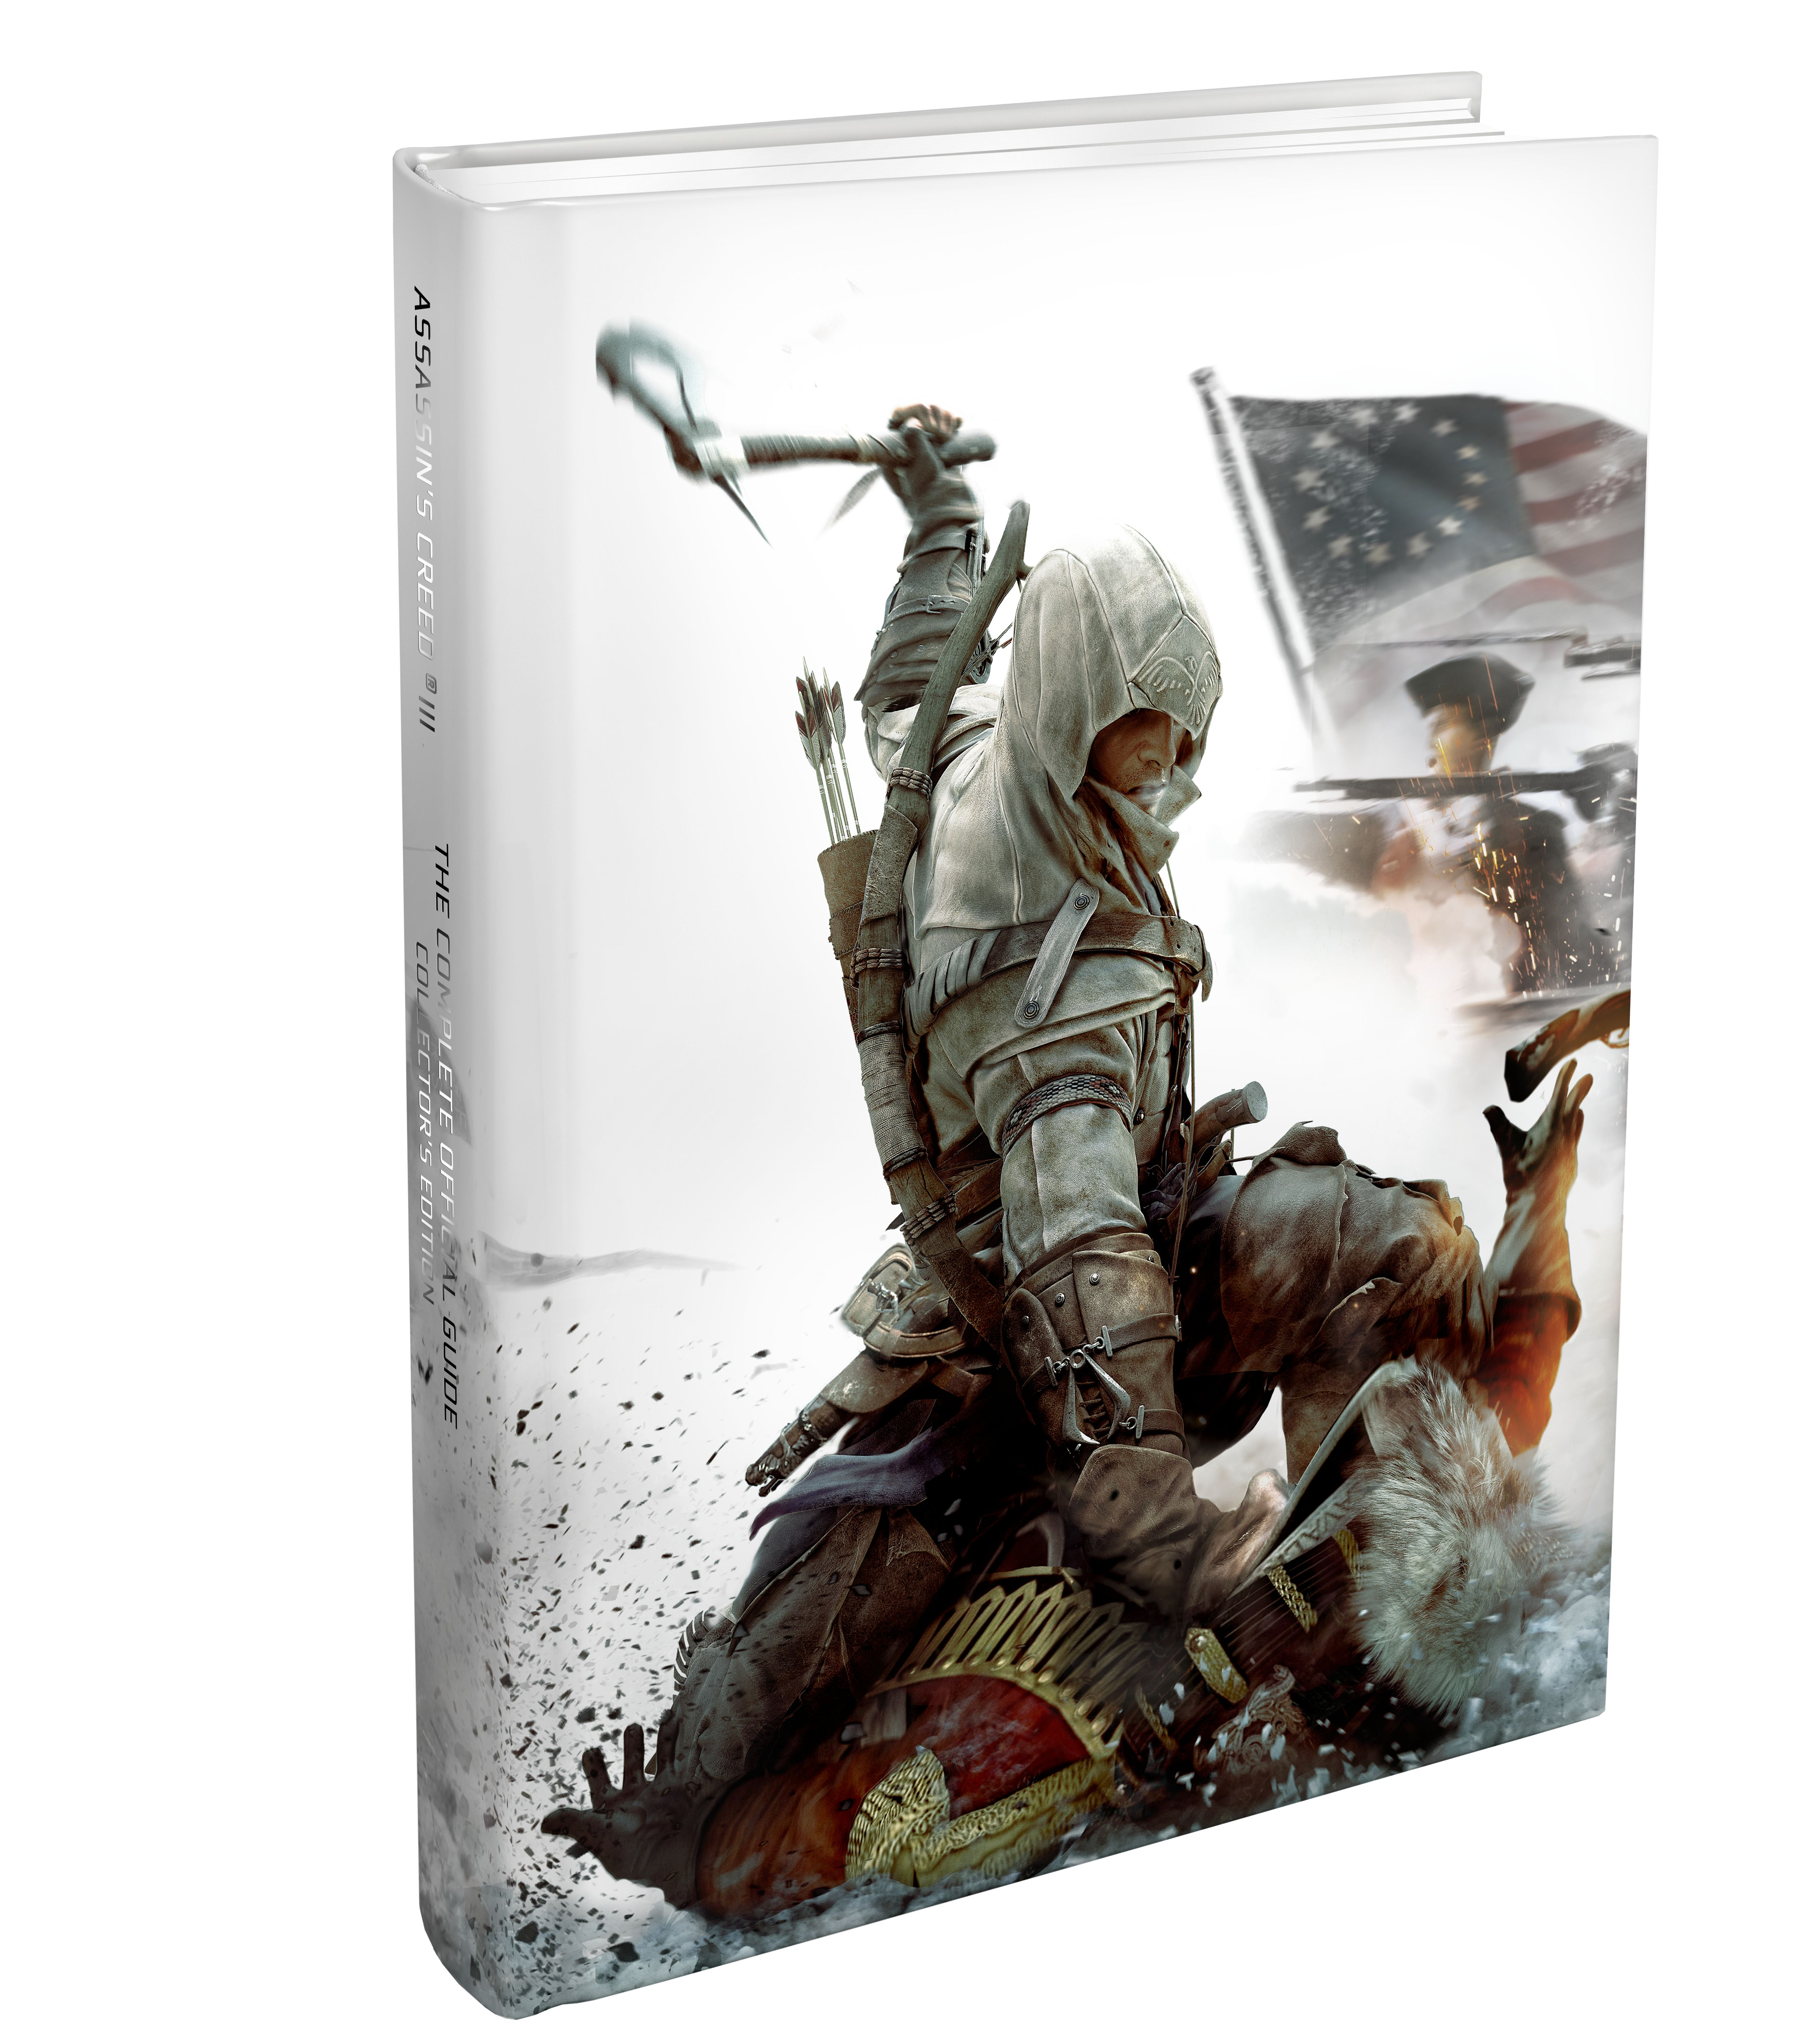 Assassin's Creed III strategy guide cover